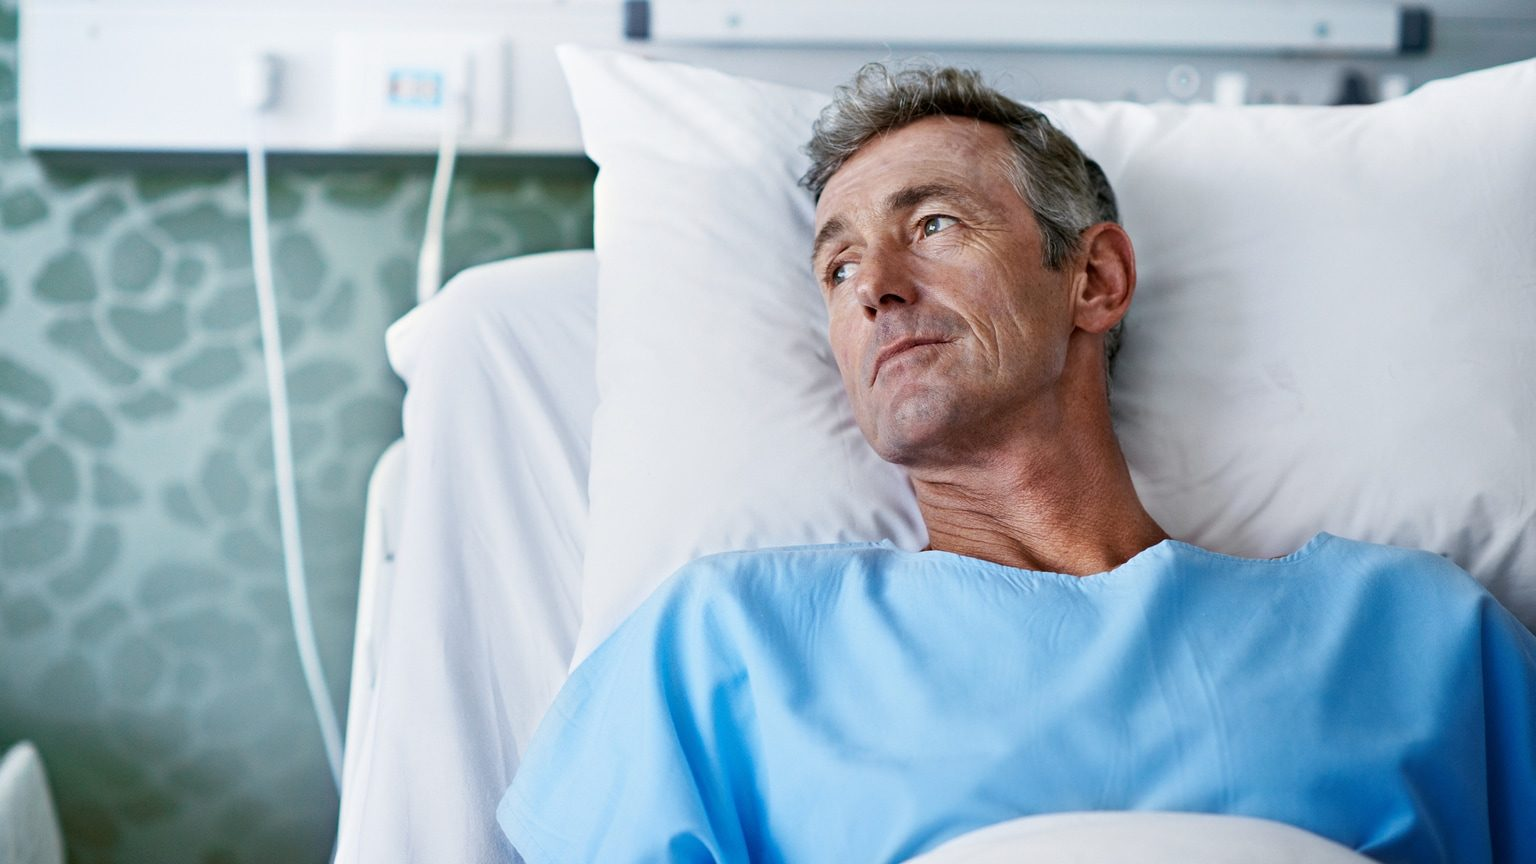 Sick man lying in a hospital bed